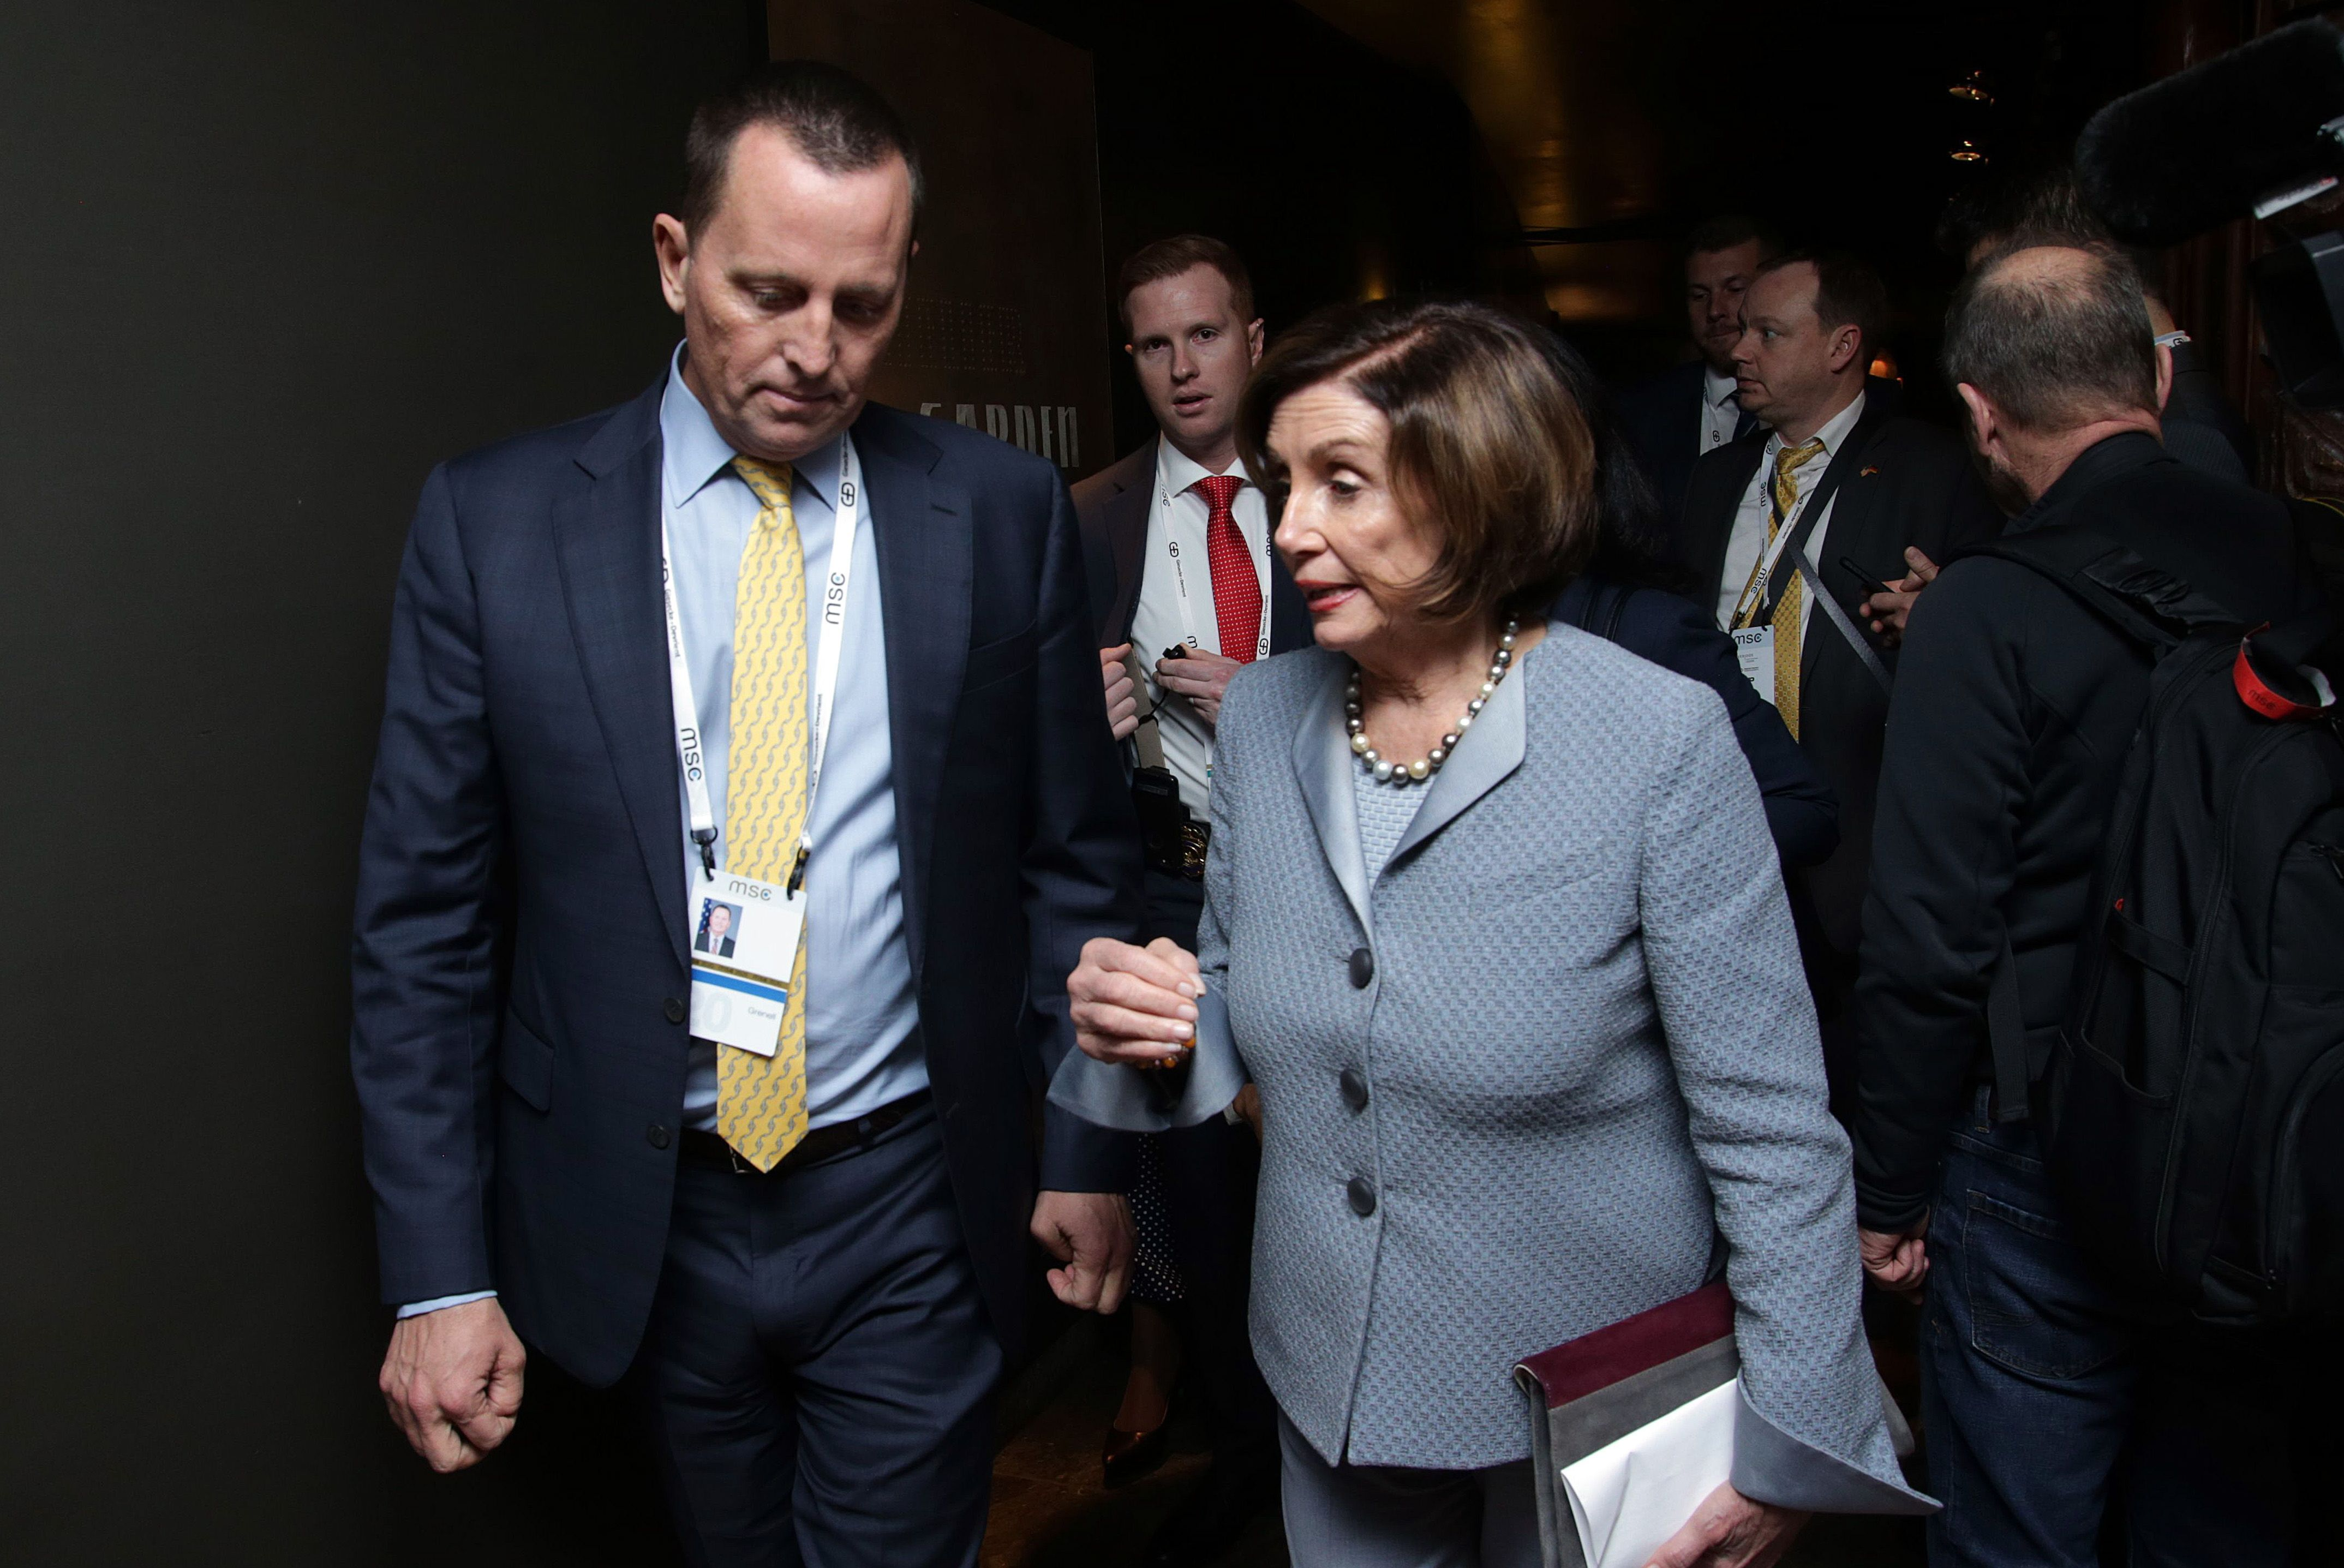 MUNICH, GERMANY - FEBRUARY 15: Nancy Pelosi (R), speaker of the US house of representatives and US ambassador to the federal republic of Germany Richard Allen Grenell chat together during the 2020 Munich Security Conference (MSC) on February 15, 2020 in Munich, Germany. The annual conference brings together global political, security and business leaders to discuss pressing issues, which this year include climate change, the US commitment to NATO and the spread of disinformation campaigns. (Photo by Johannes Simon/Getty Images)